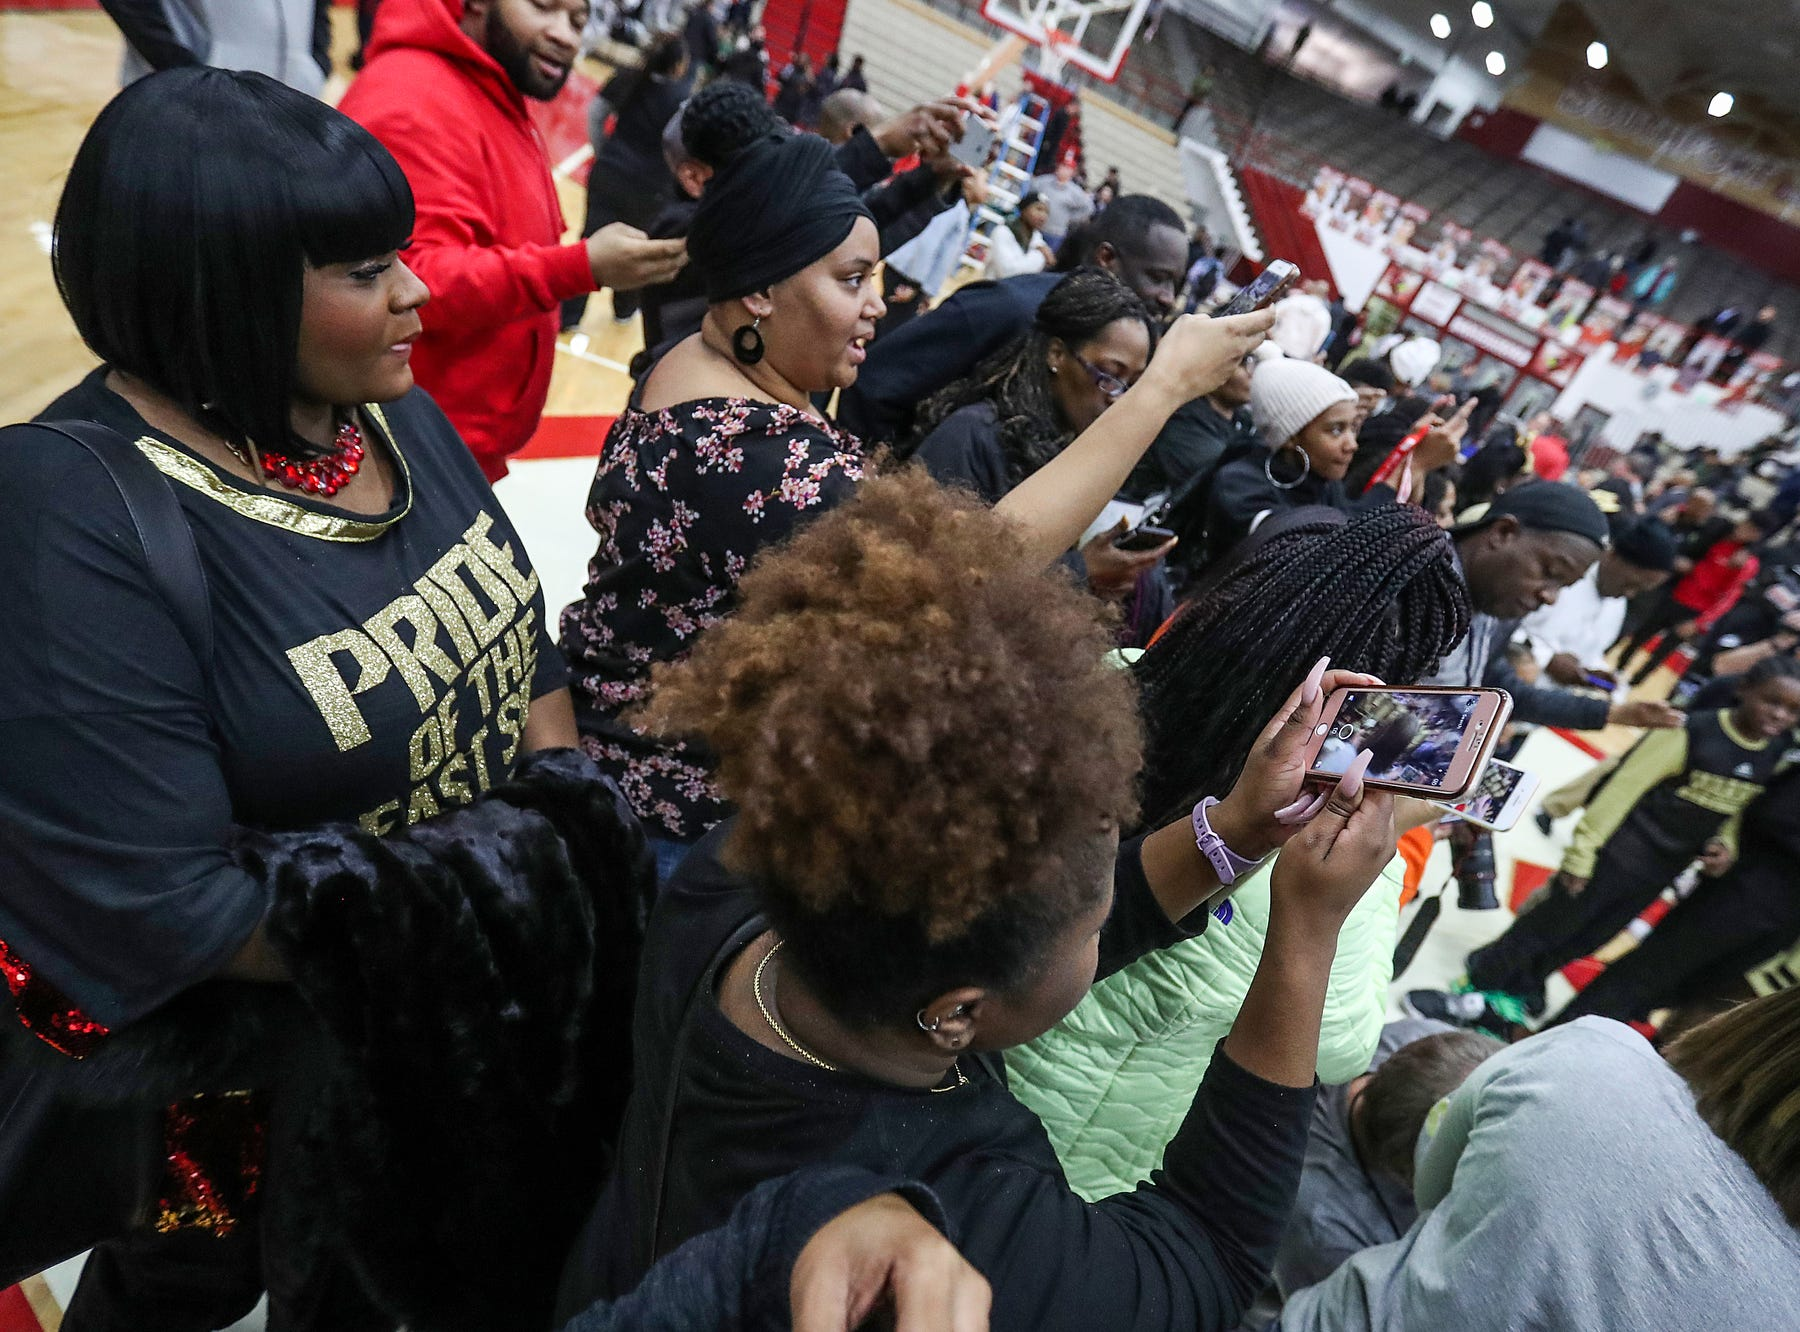 Parents take photos of the team after Warren Central won the Marion County tournament title at Southport High School in Indianapolis, Monday, Jan. 14, 2019. The victory marks a 46-game winning streak for the Warriors, the third-longest in state history.